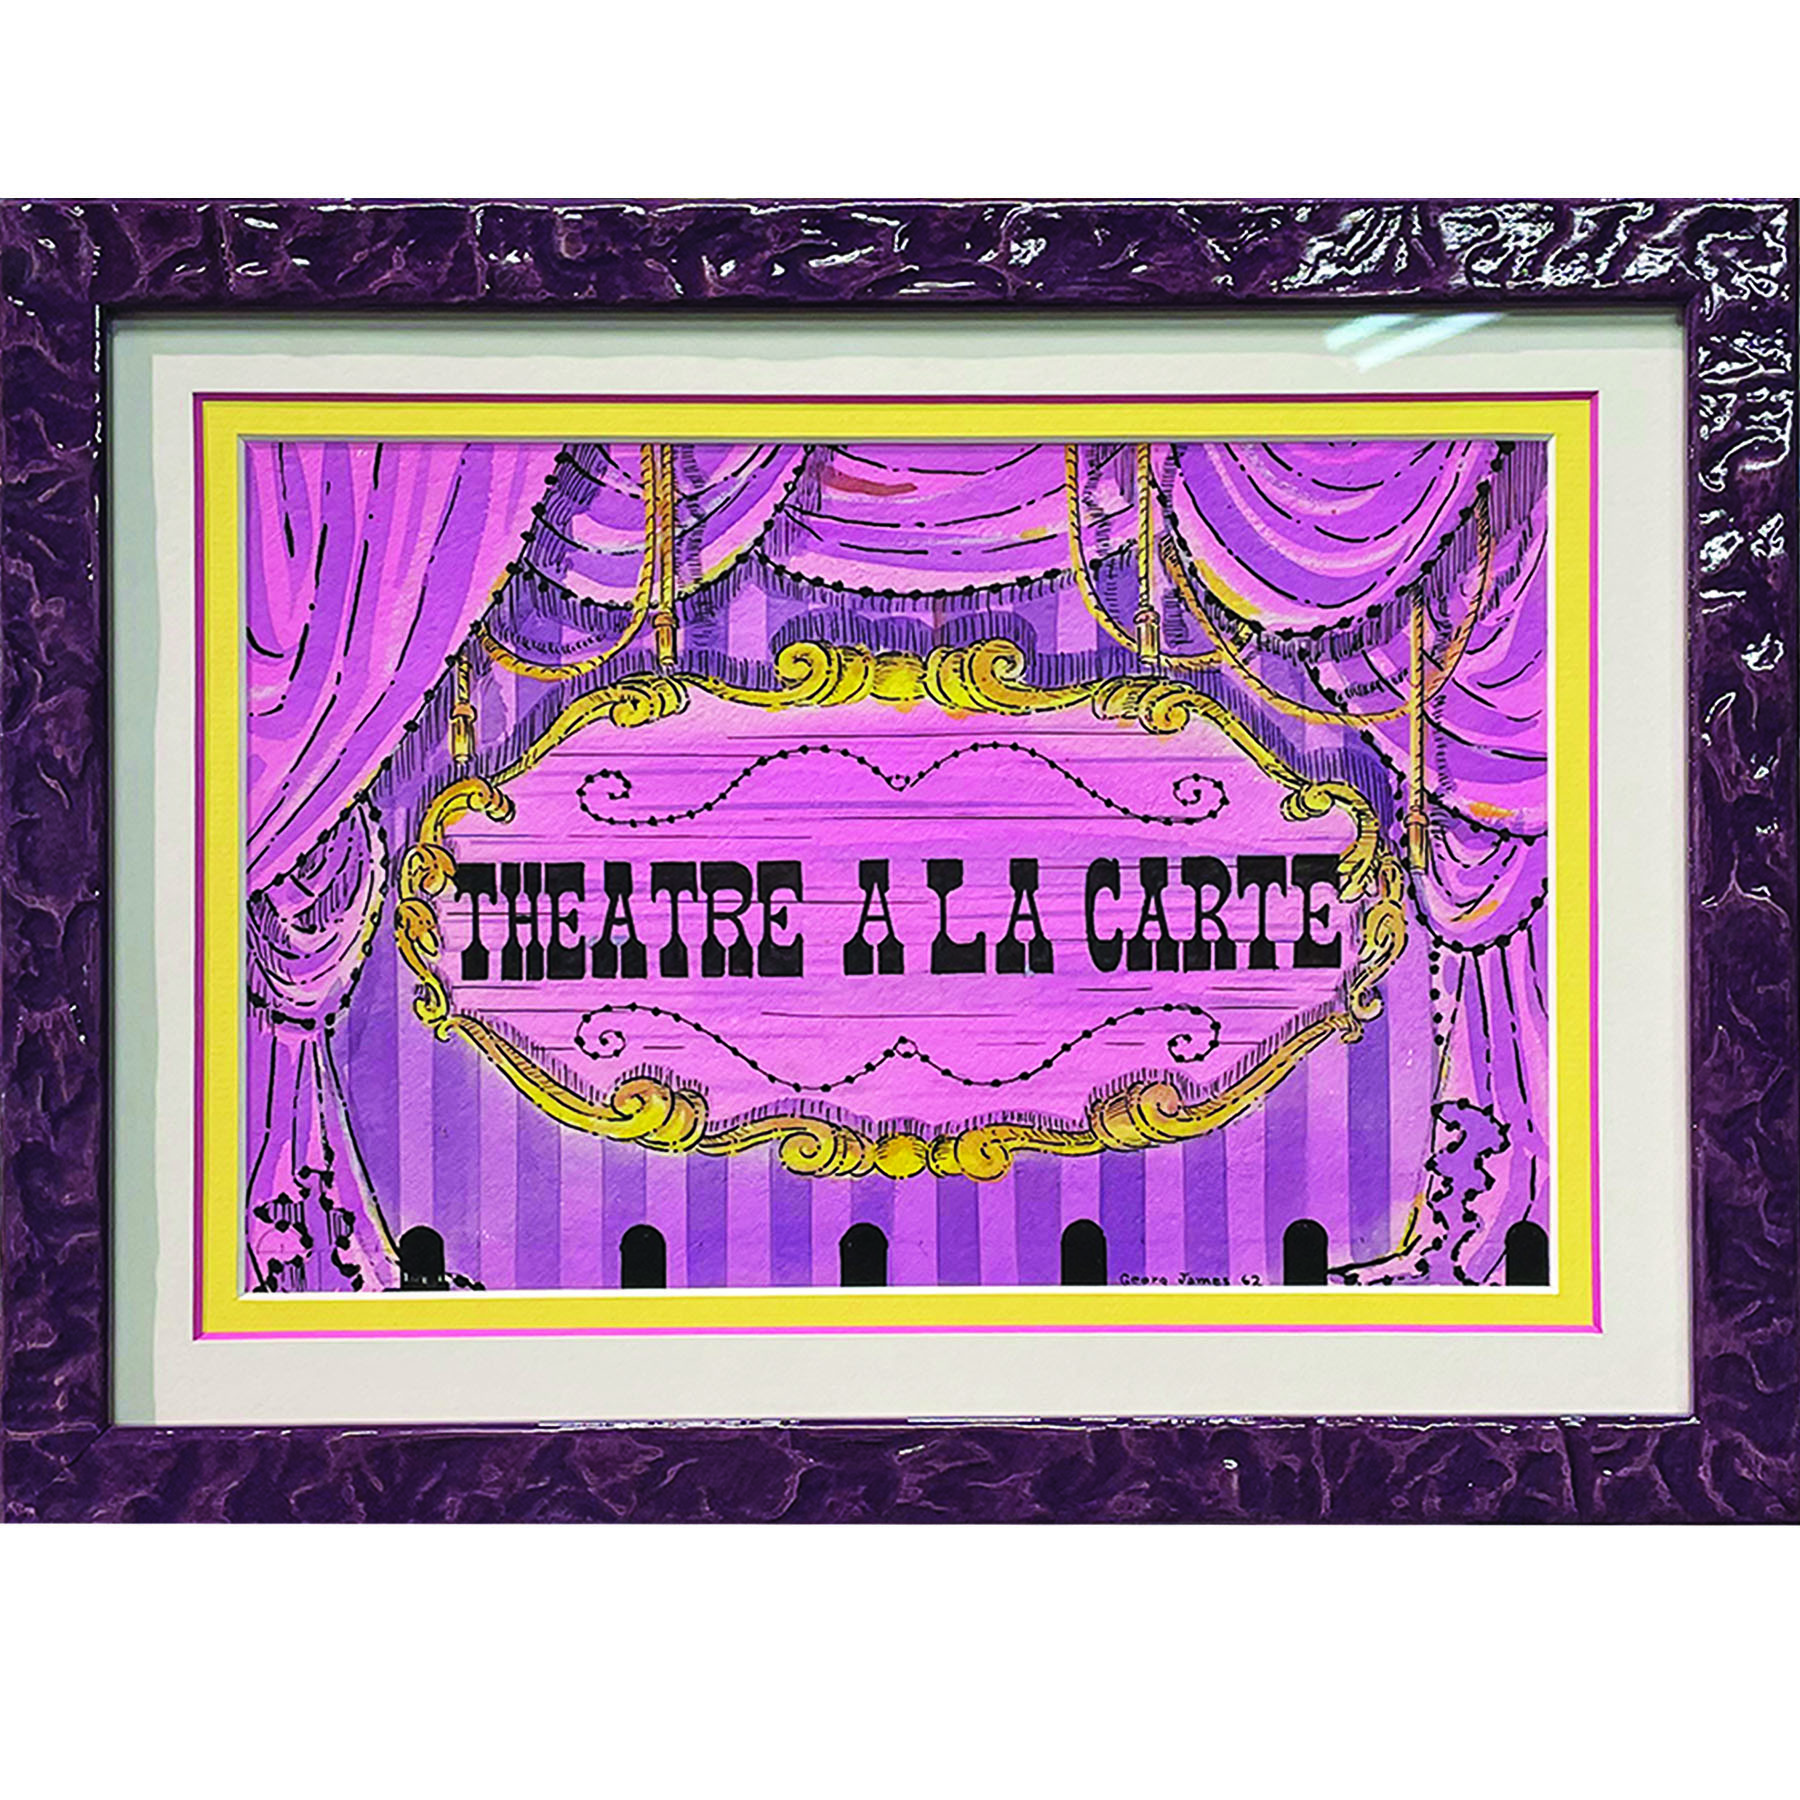 Purple and yellow artwork with textured purple custom frame